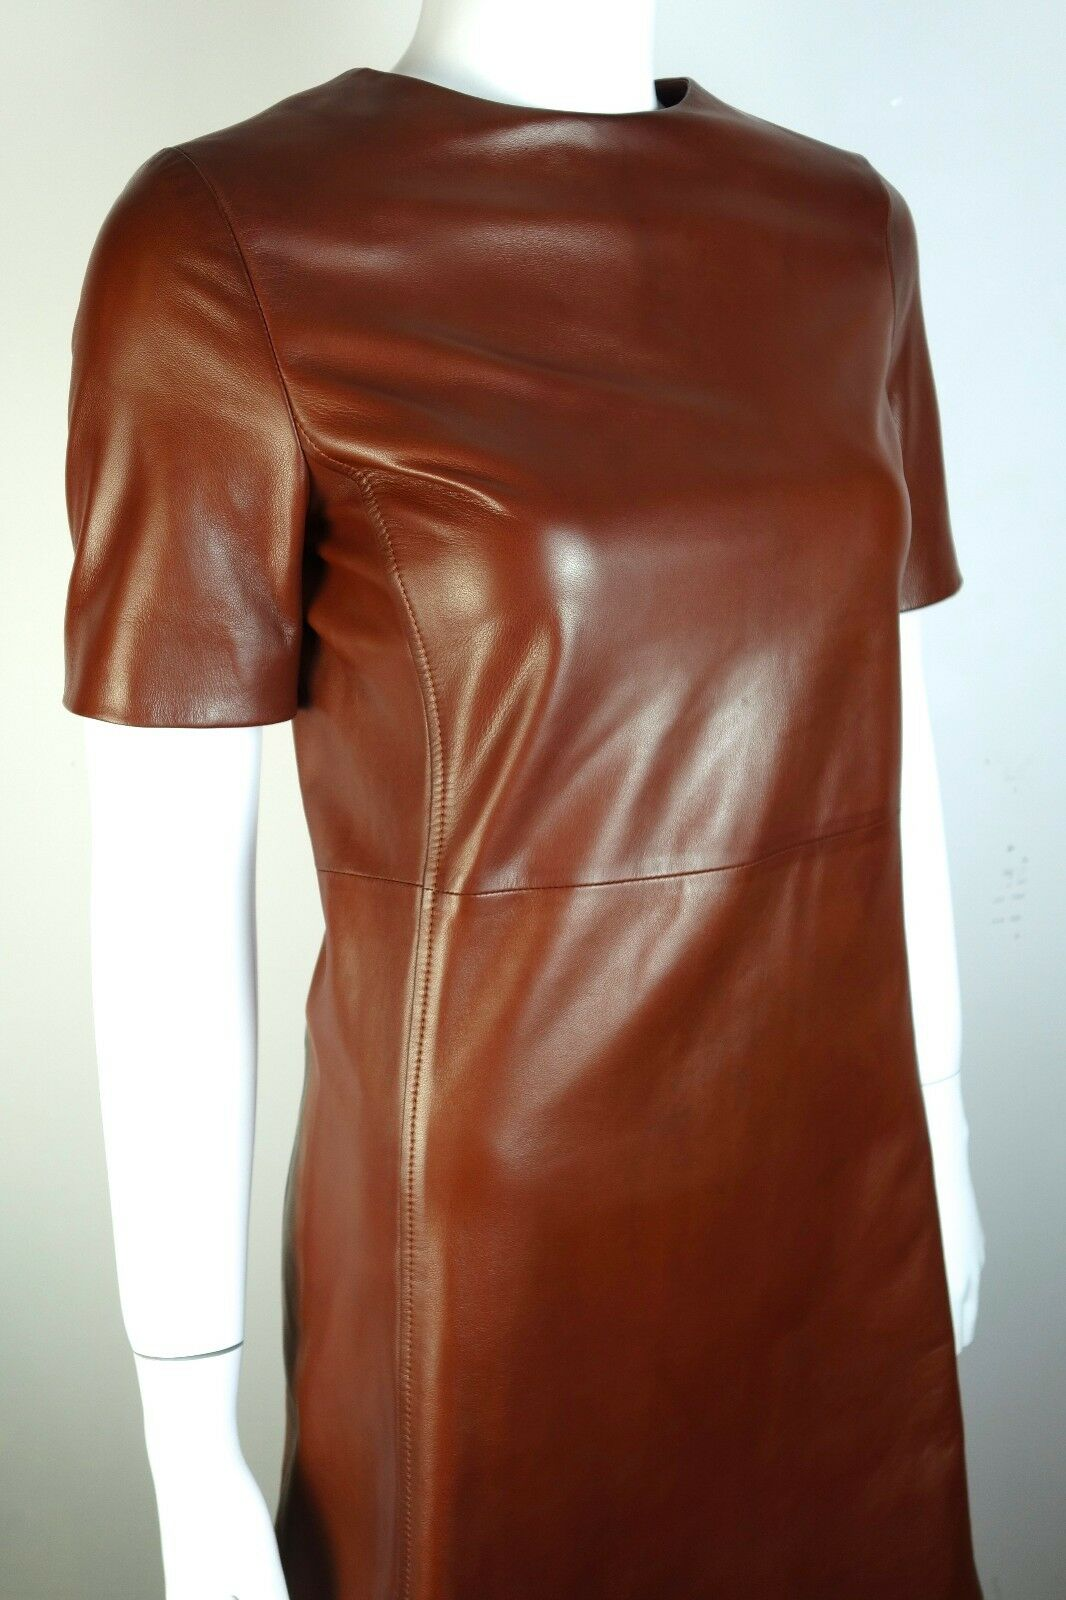 PRADA Brown Buffed Nappa Leather Mini Dress IT38 US4 US4 US4 NWT 0e97c6